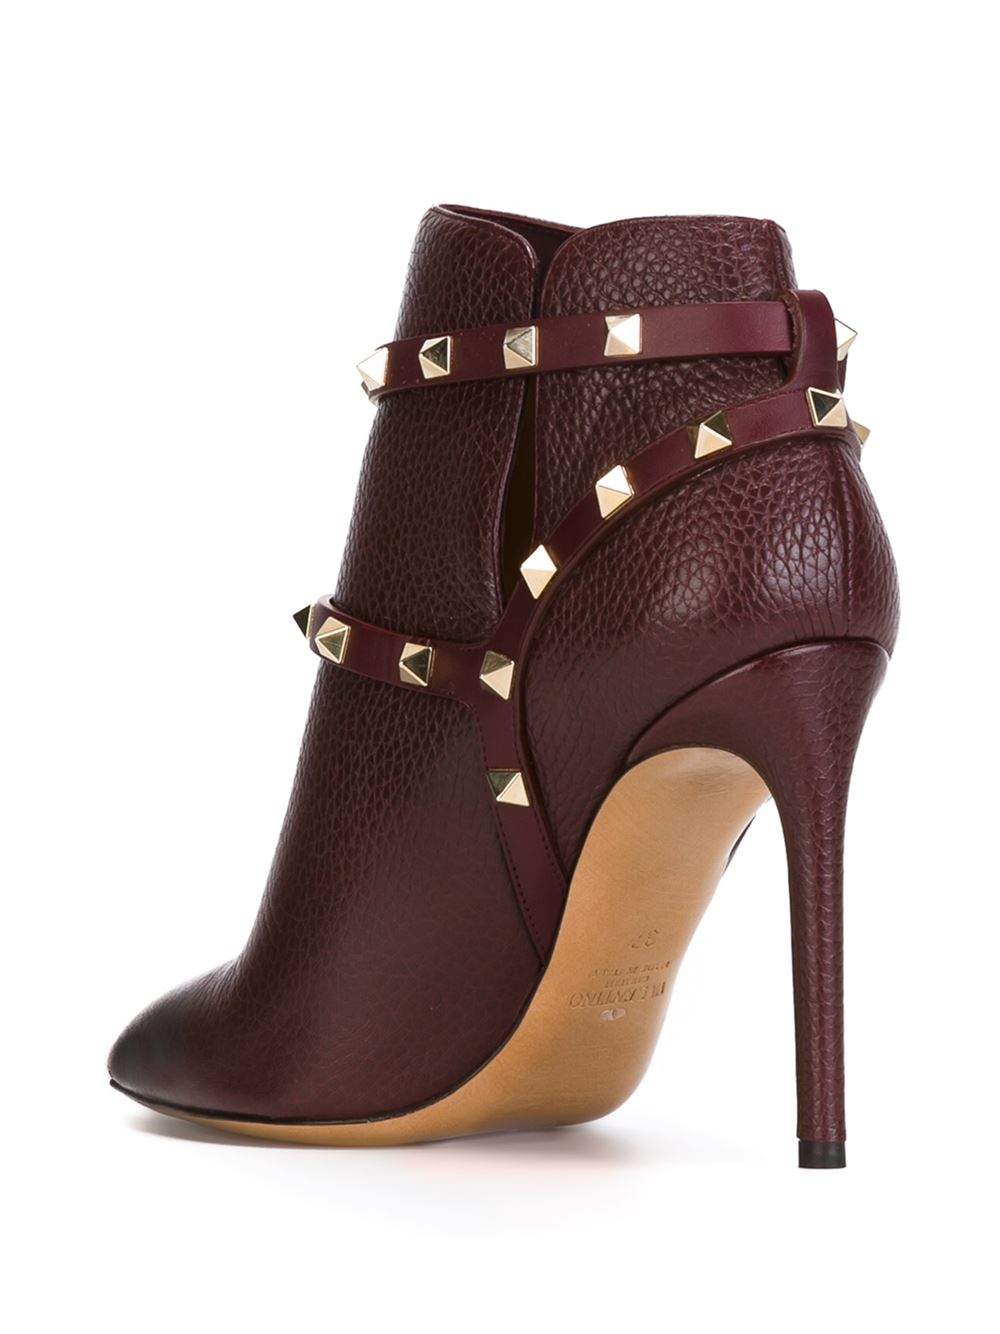 Valentino Leather Rockstud Ankle Boots In Red Brown Lyst